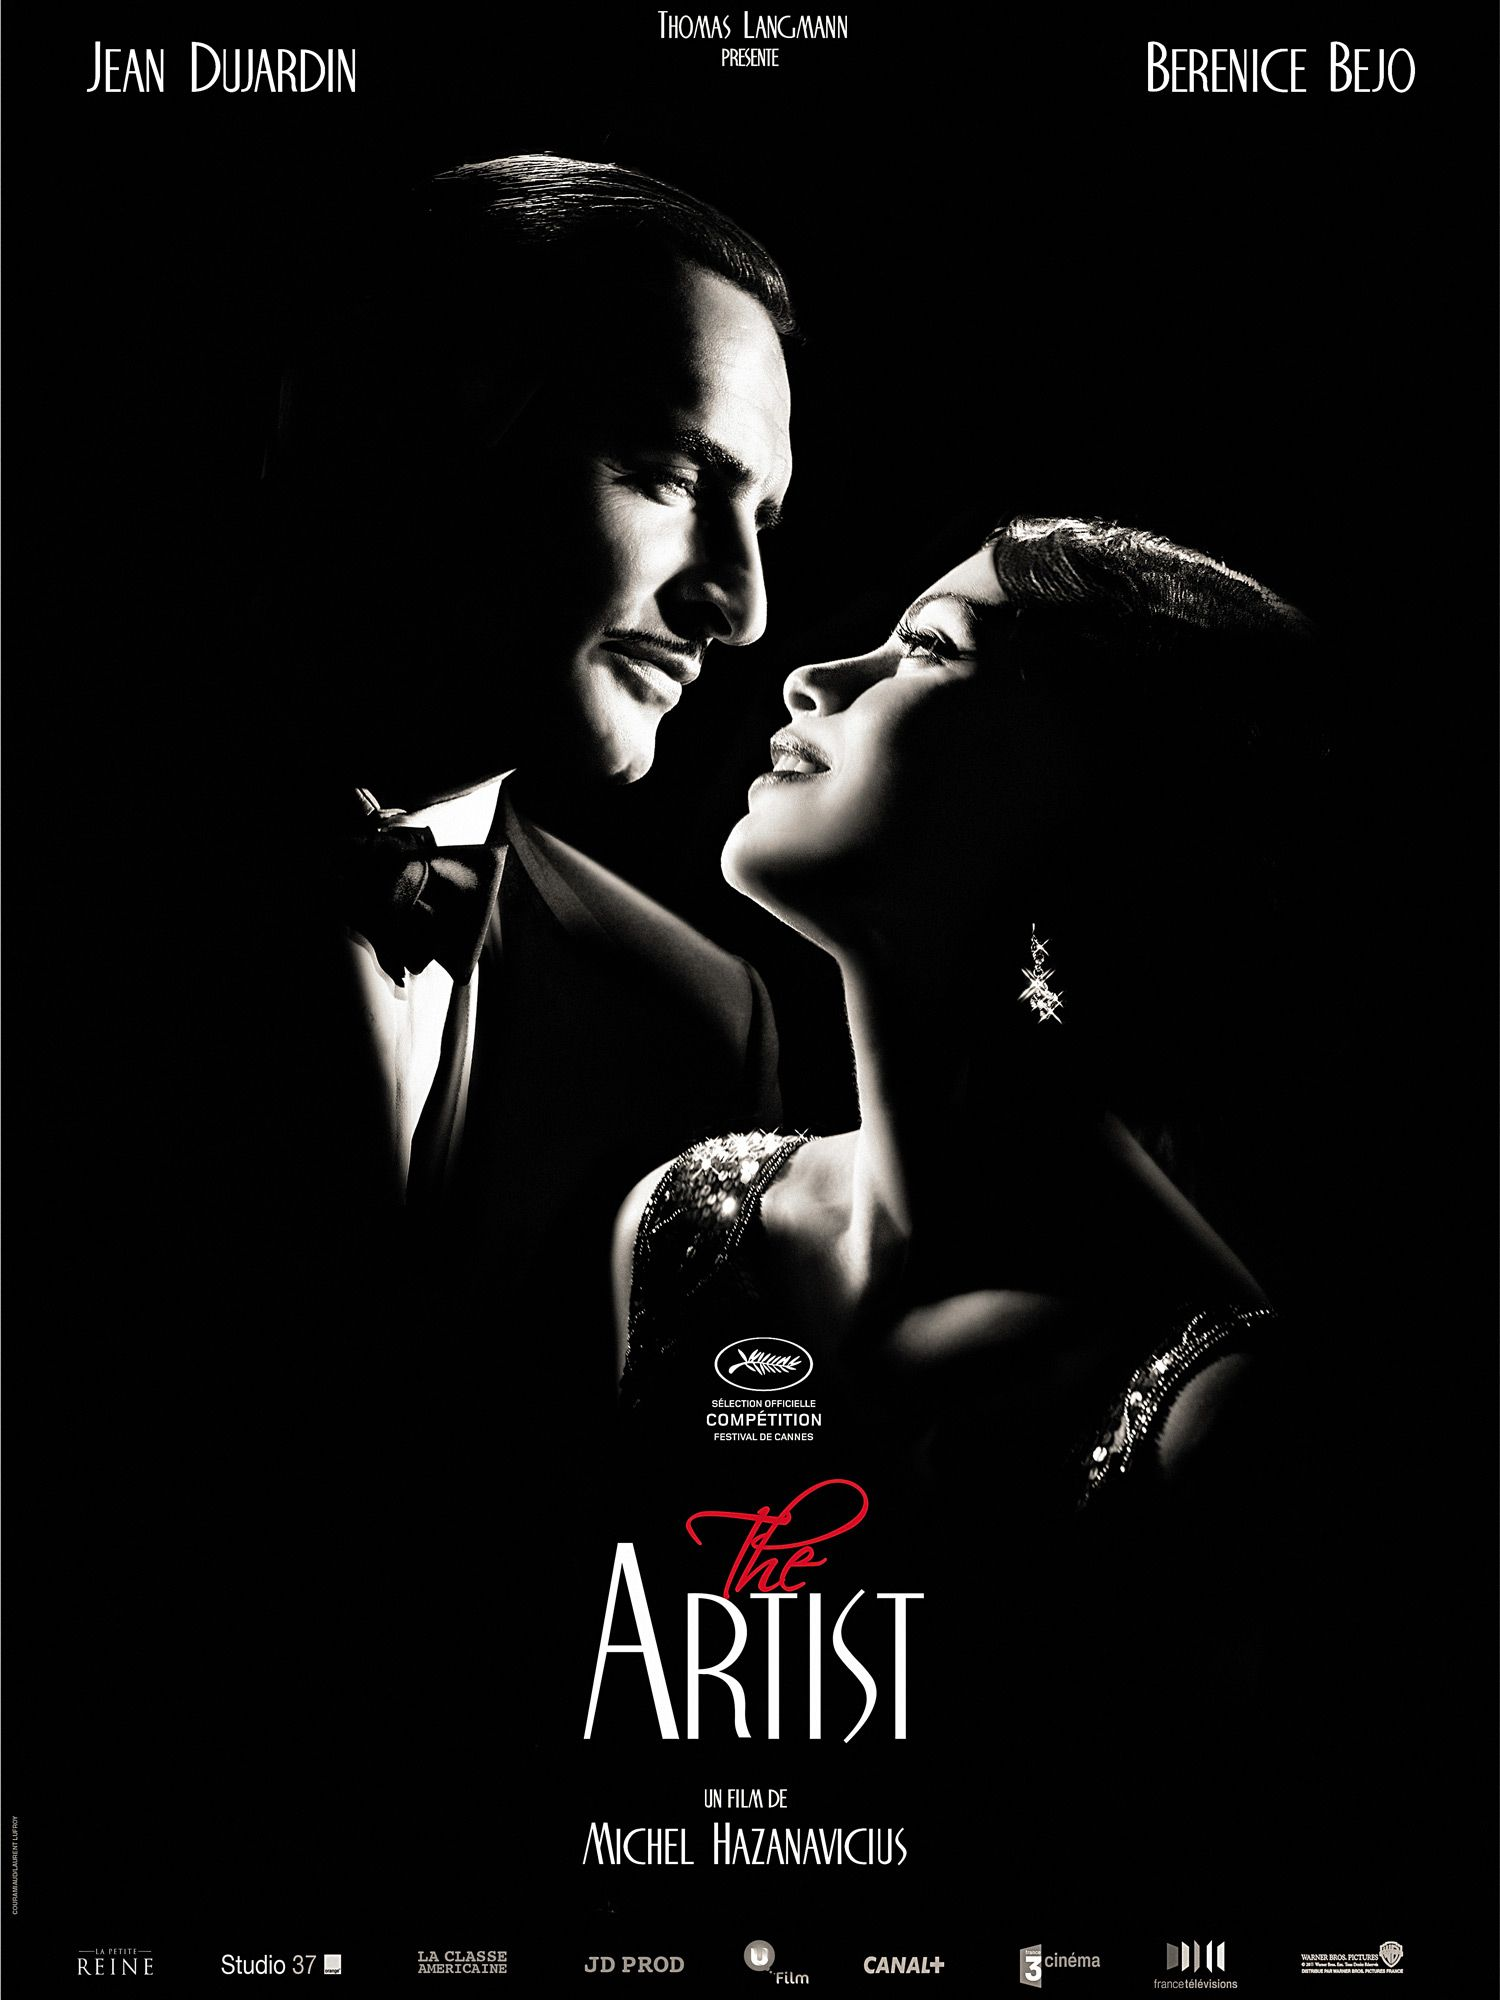 The Artist 2011 Is A Black And White Silent Film A Romantic Comedy Drama Exploring Themes Of Fame Jealousy Reg The Artist Movie Artist Film Silent Movie